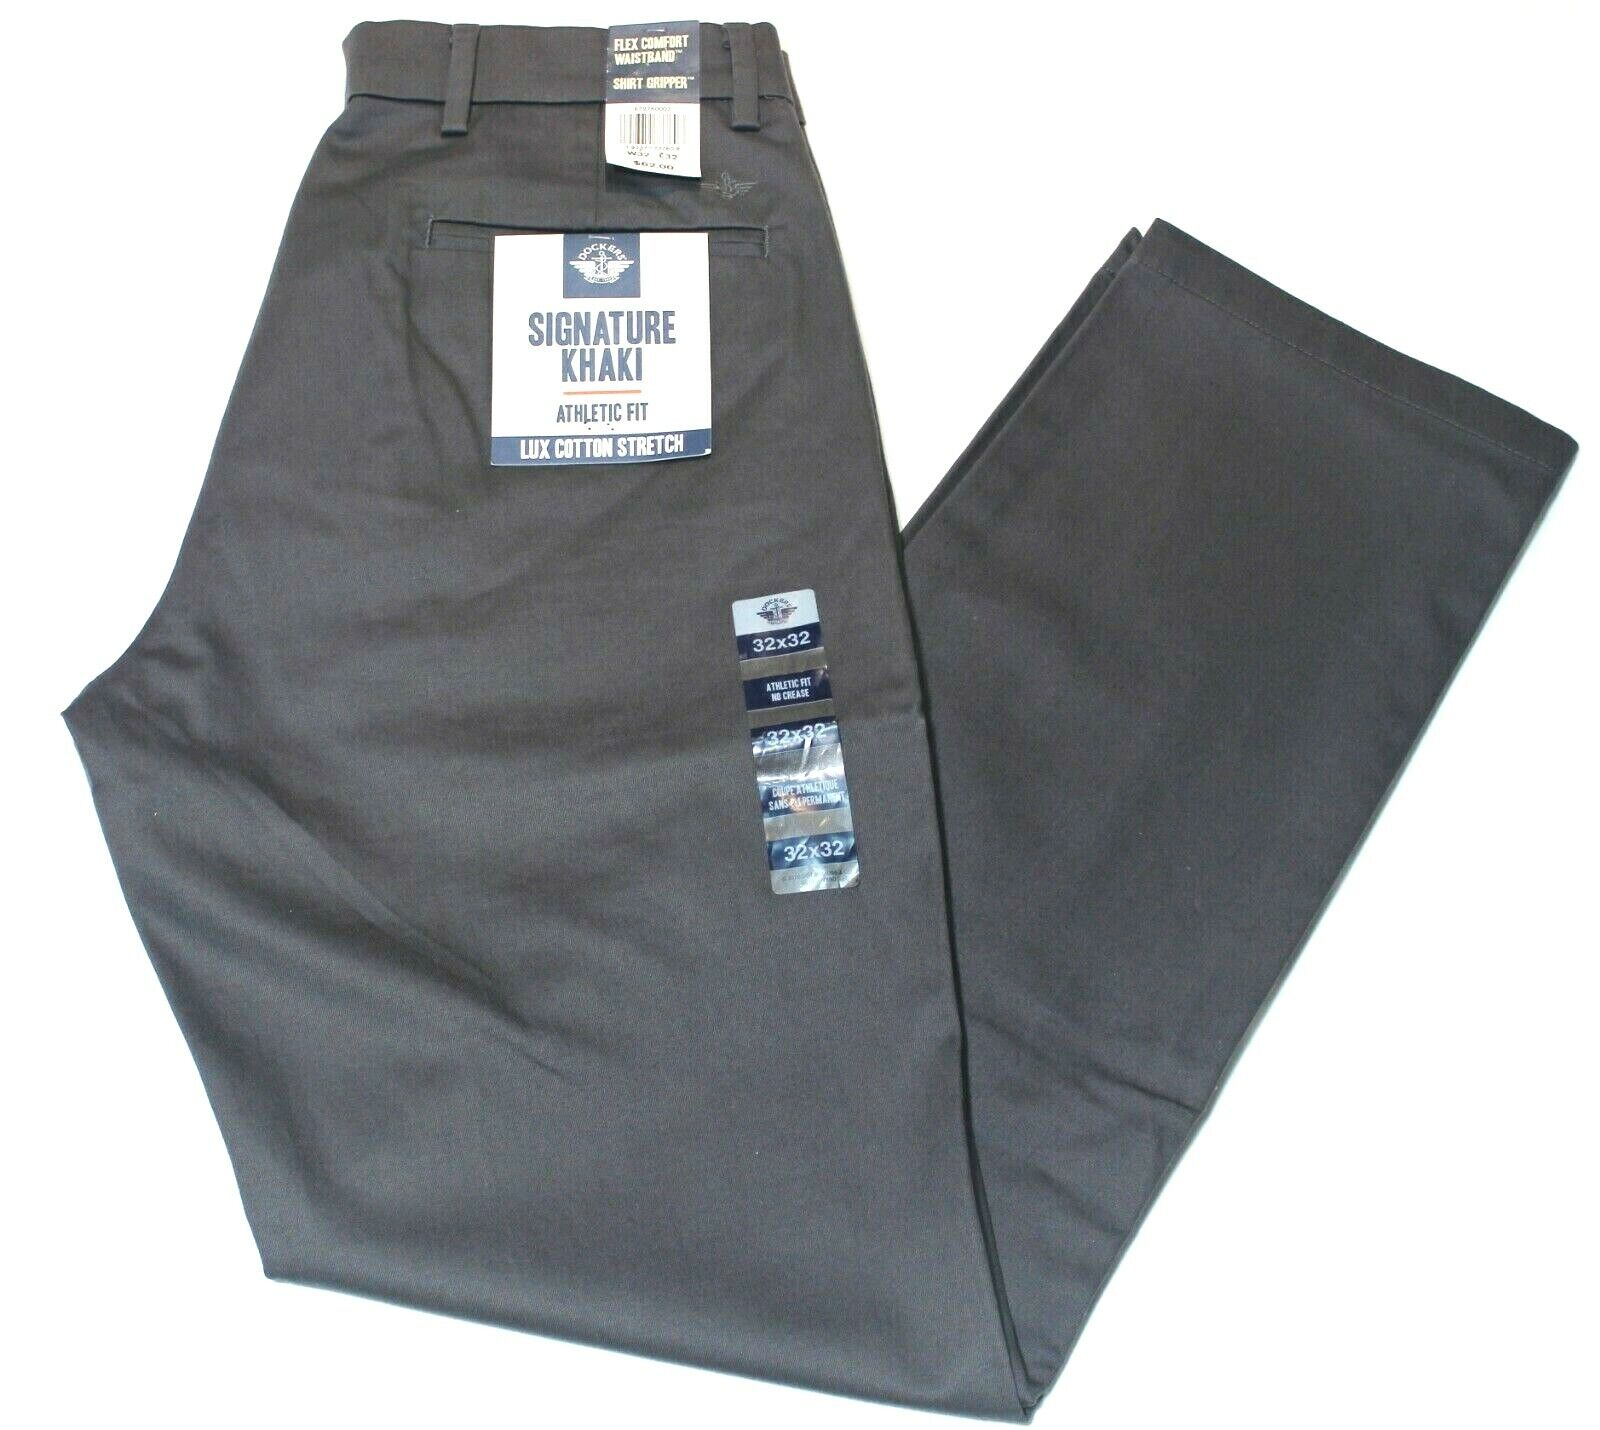 Men Charcoal Gray Dockers Signature Khaki Athletic Fit Comfo